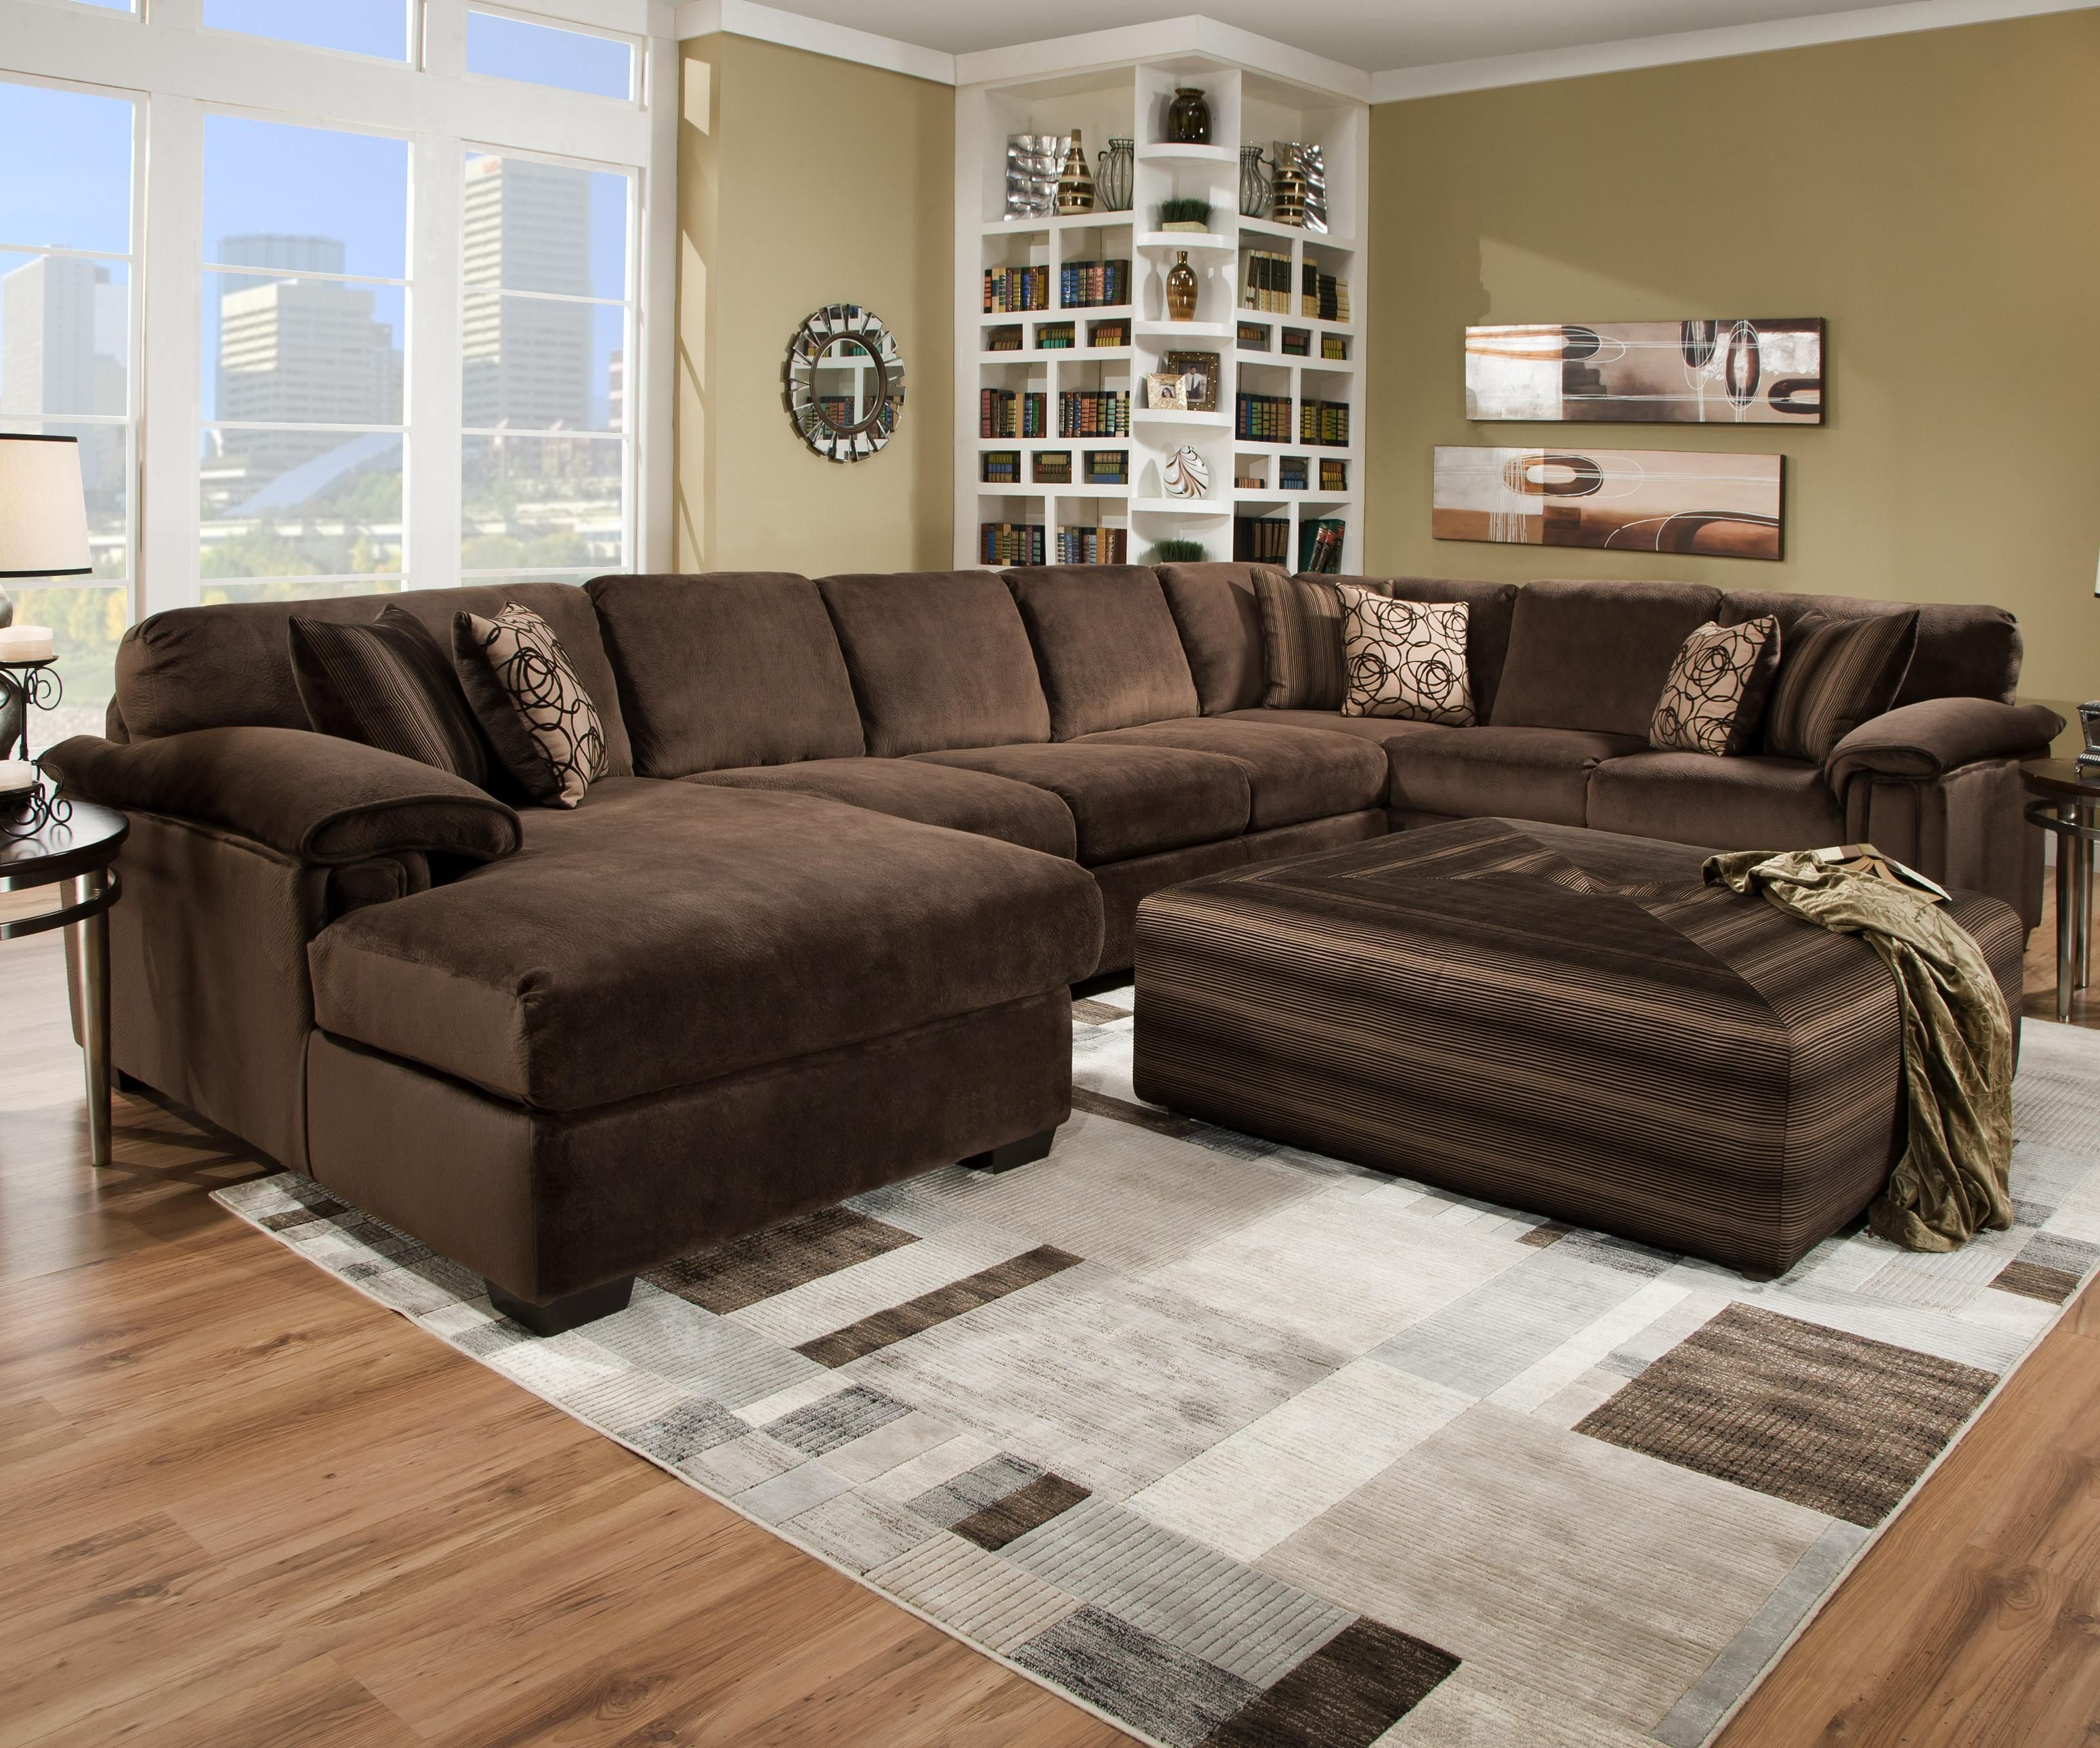 Chocolate Brown Velvet Sectional Sofa Brown Sectional Living